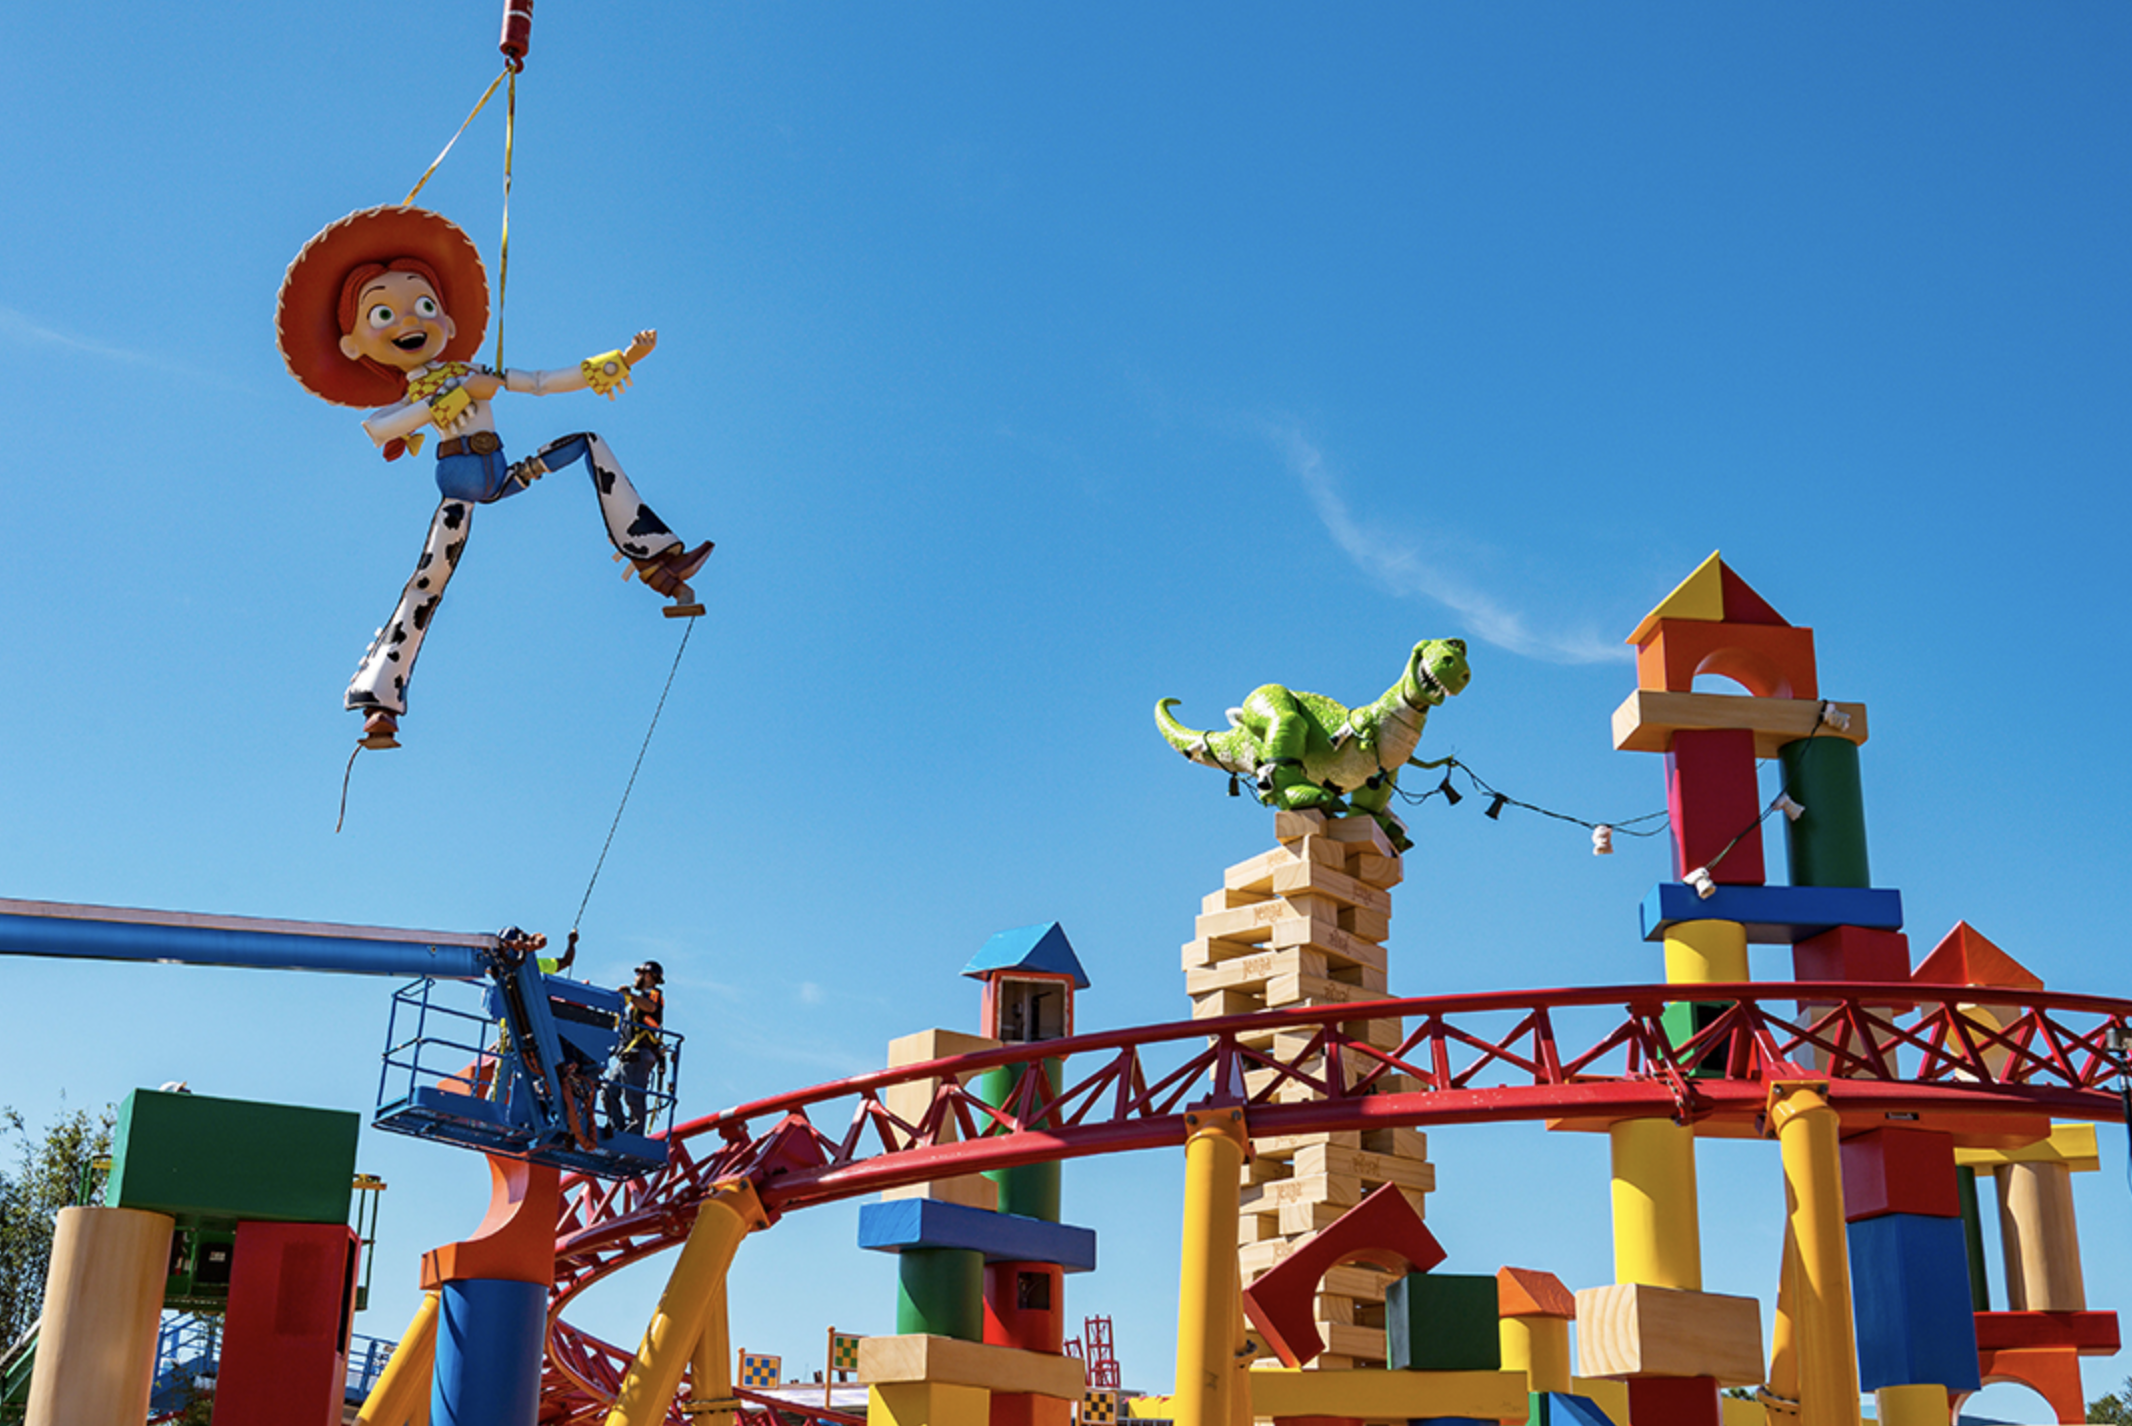 Paul Miller Porsche >> Toy Story Land Opening Soon At Disney Parks - Pursuitist